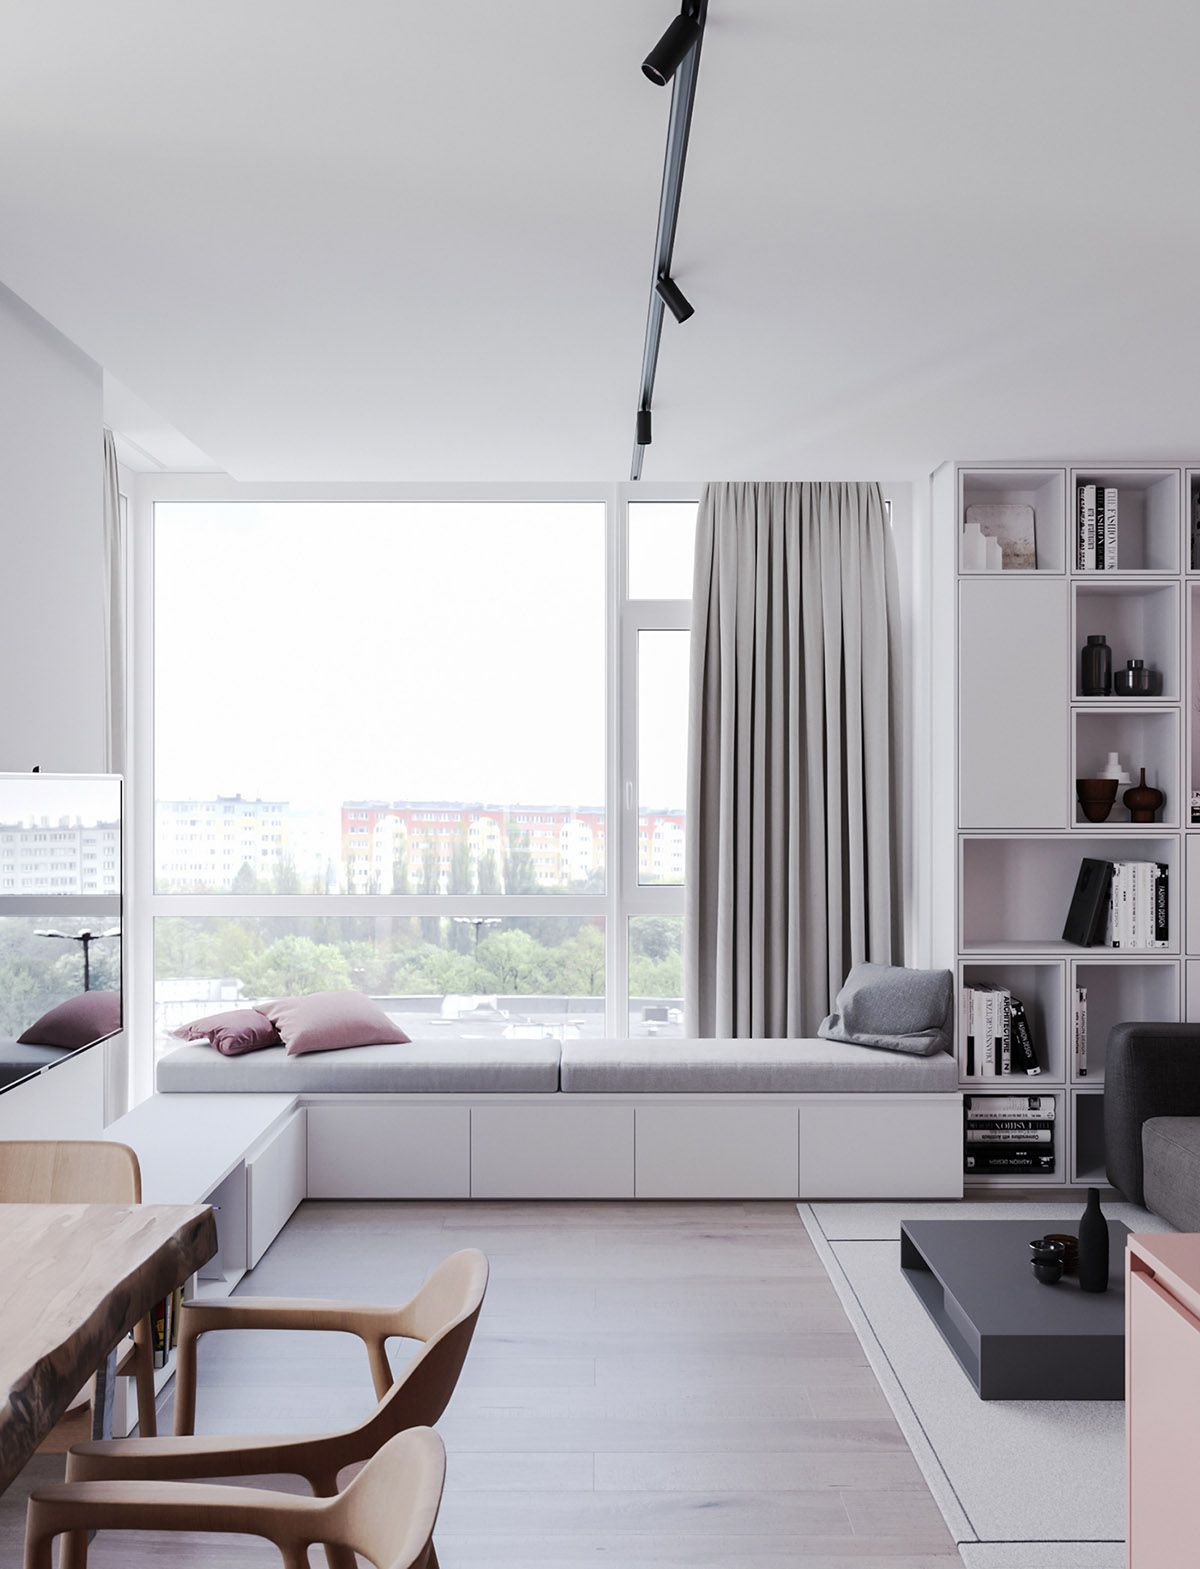 A Striking Example Of Interior Design Using Pink &